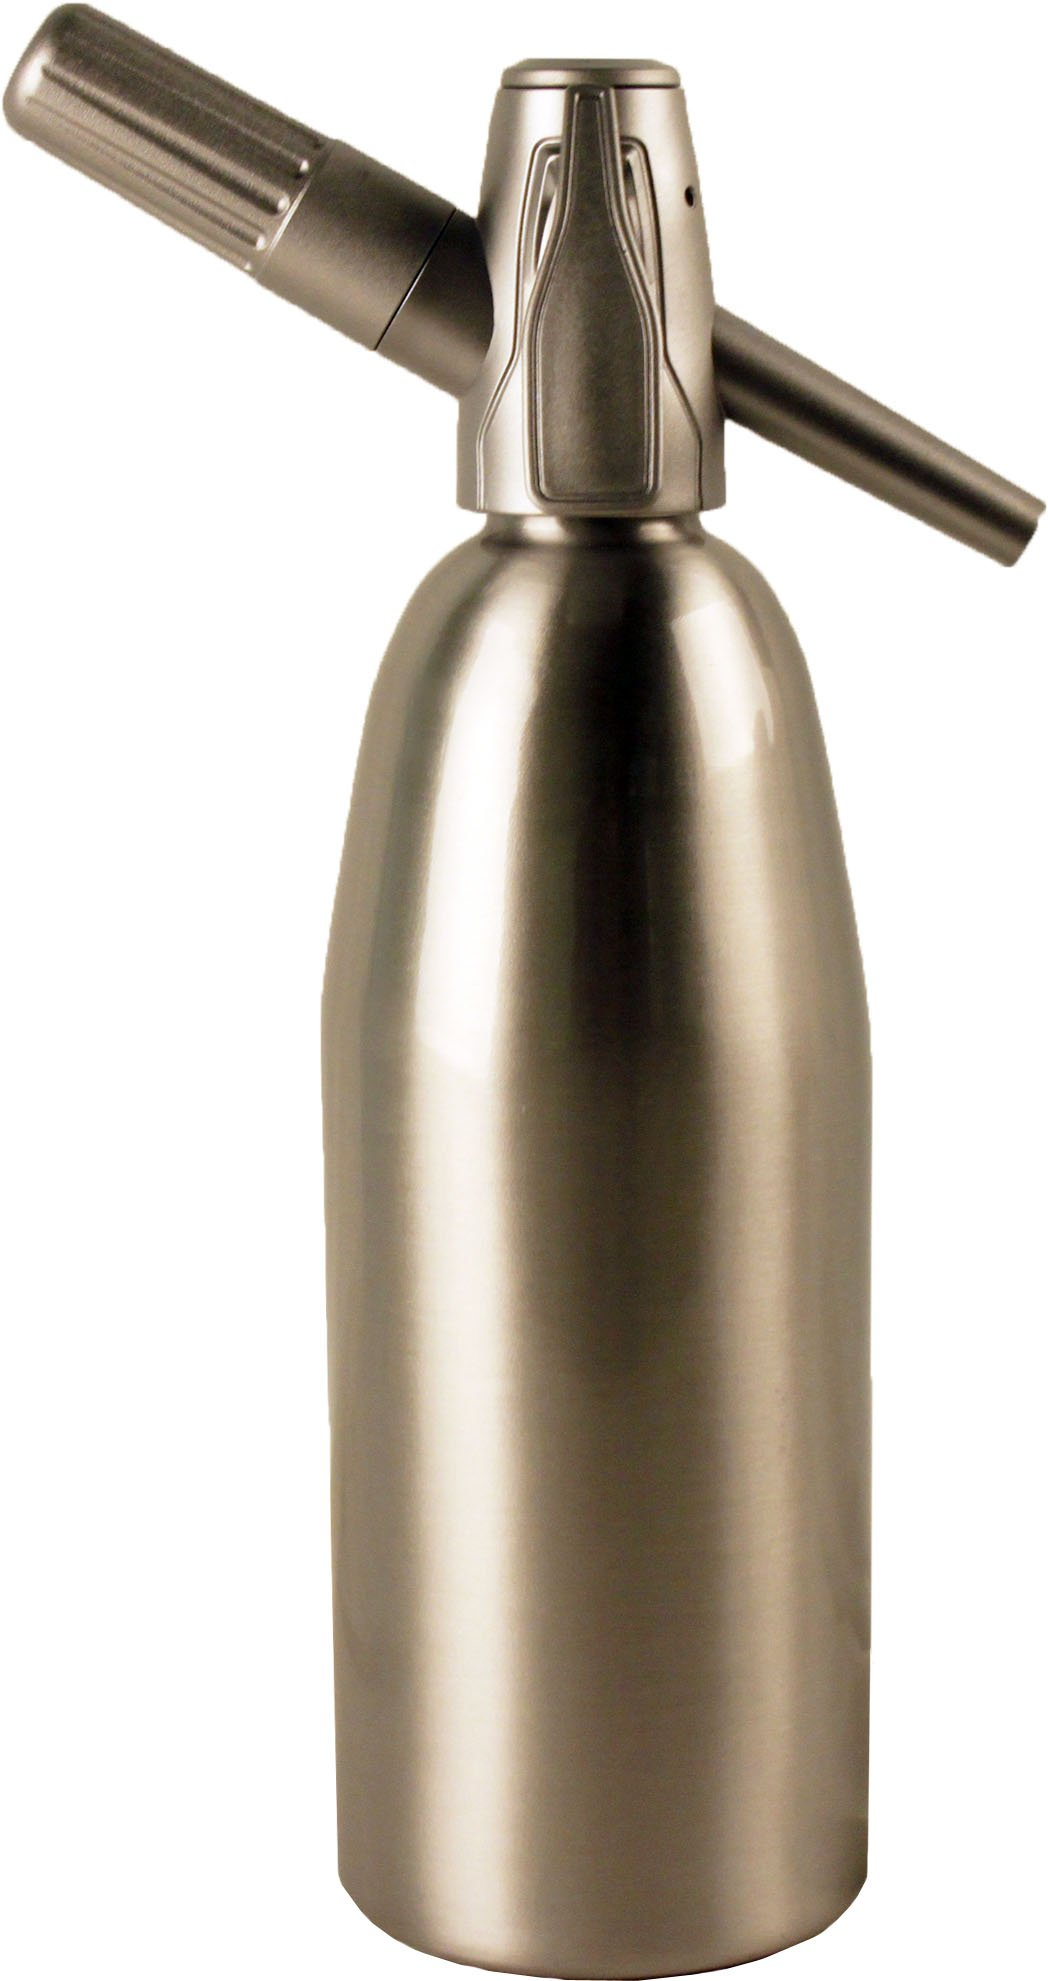 Creamright Sparkle Soda Siphon-Silver by Creamright